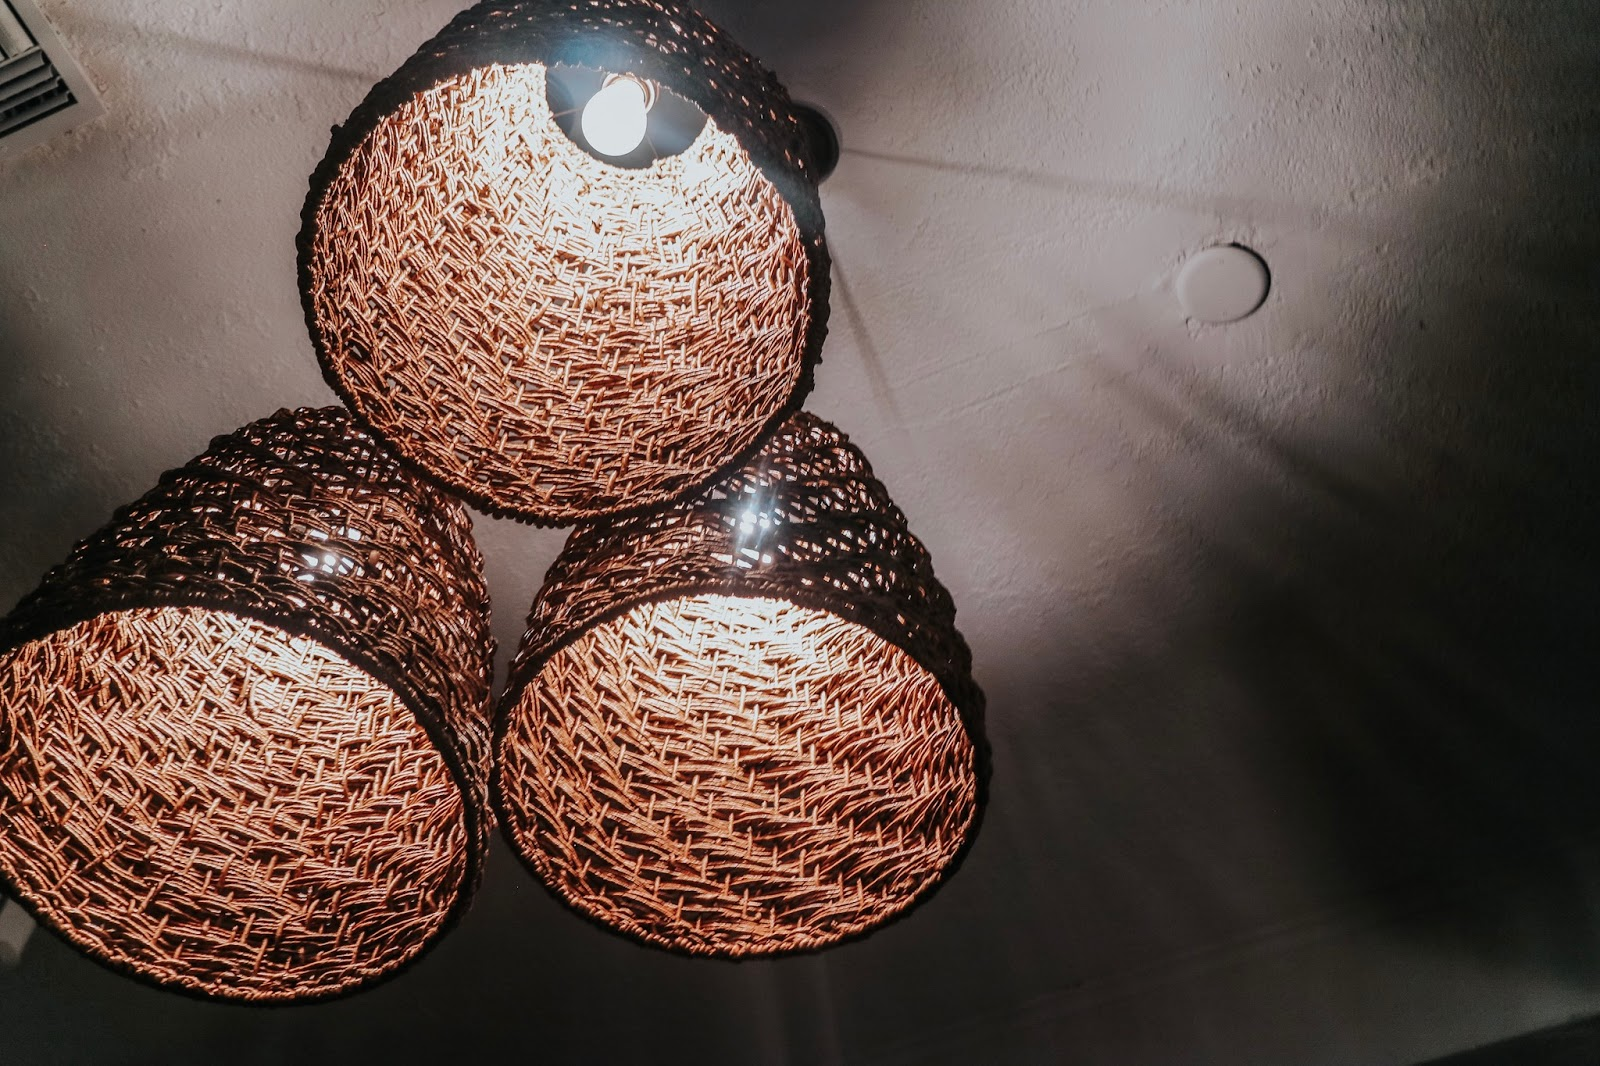 Woven basket light decor at boca in Tampa Florida